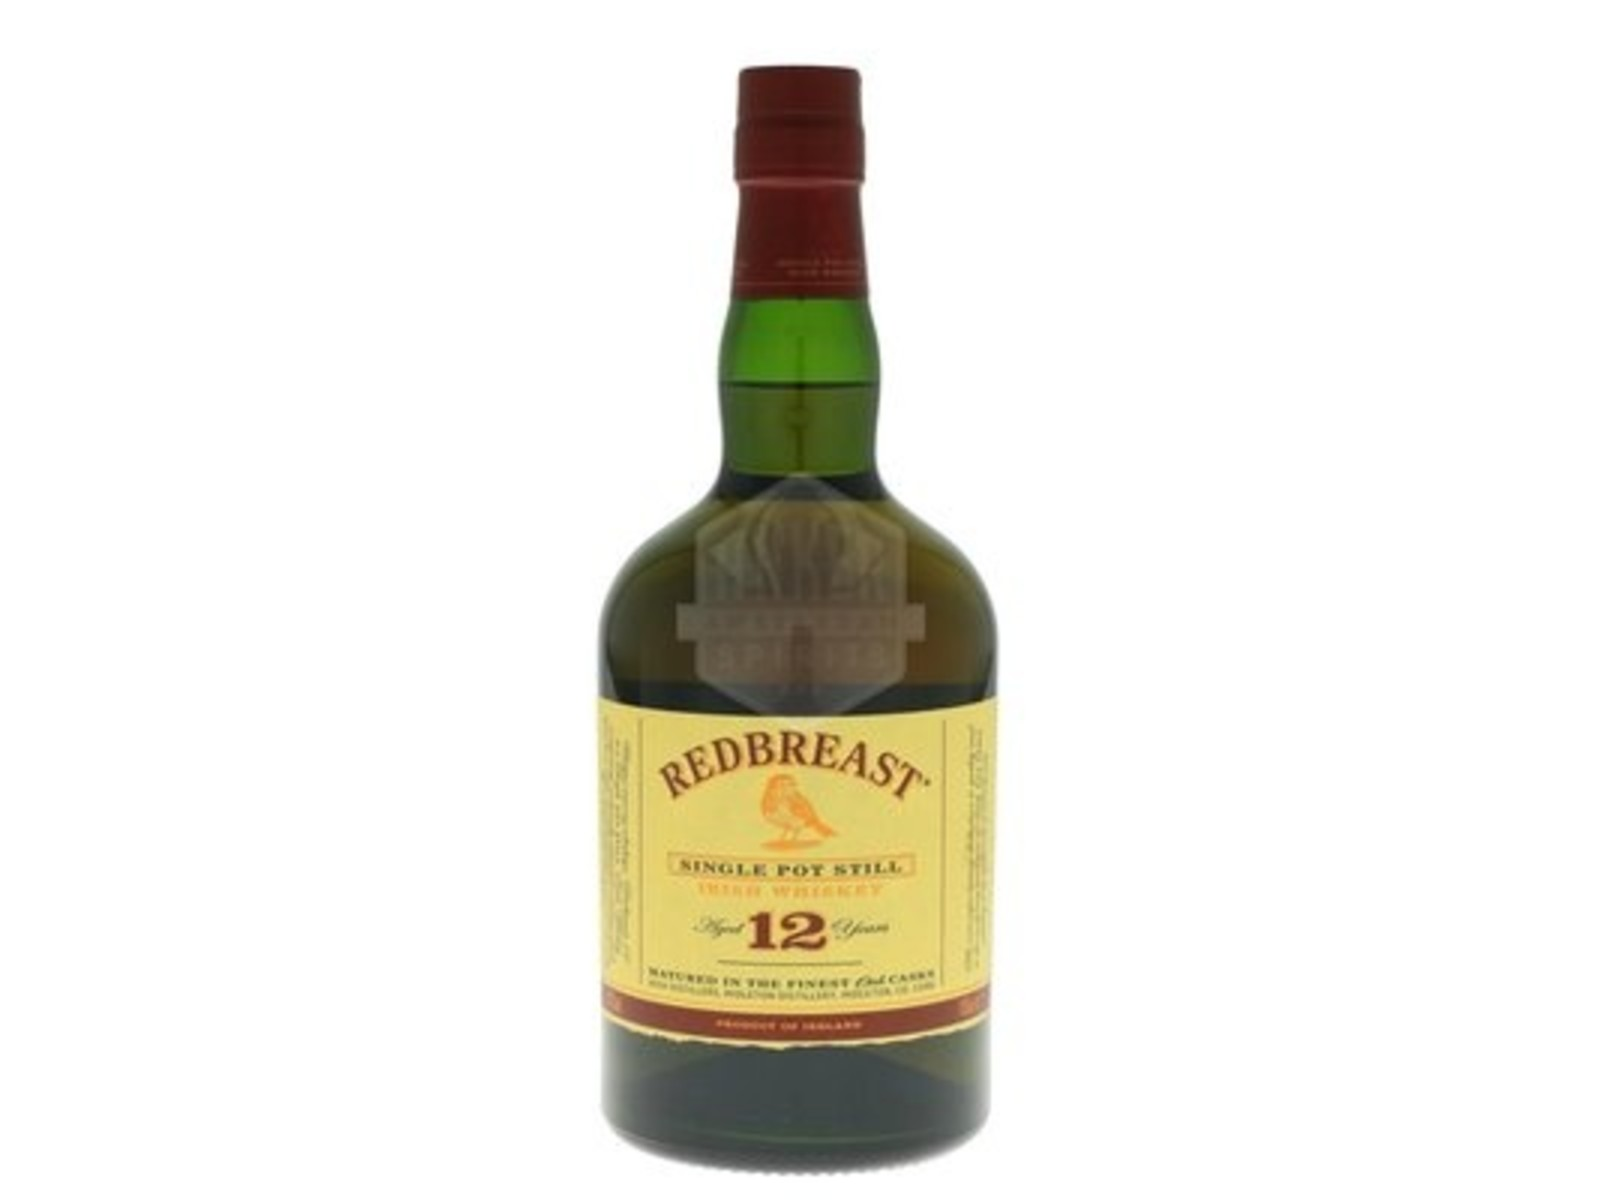 Redbreast Redbreast / 12 years / whisky / 0,7L